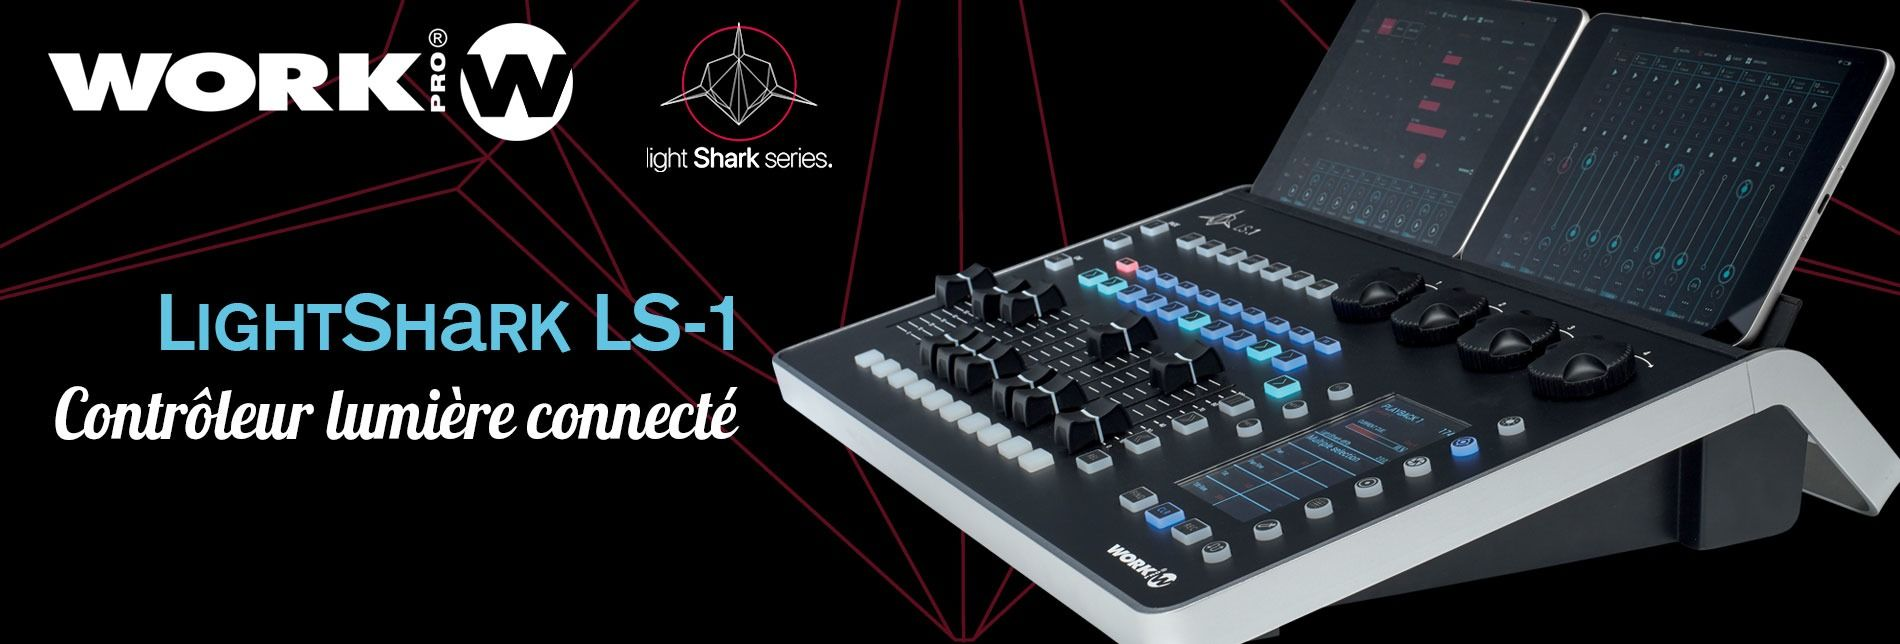 Work LightShark LS-1